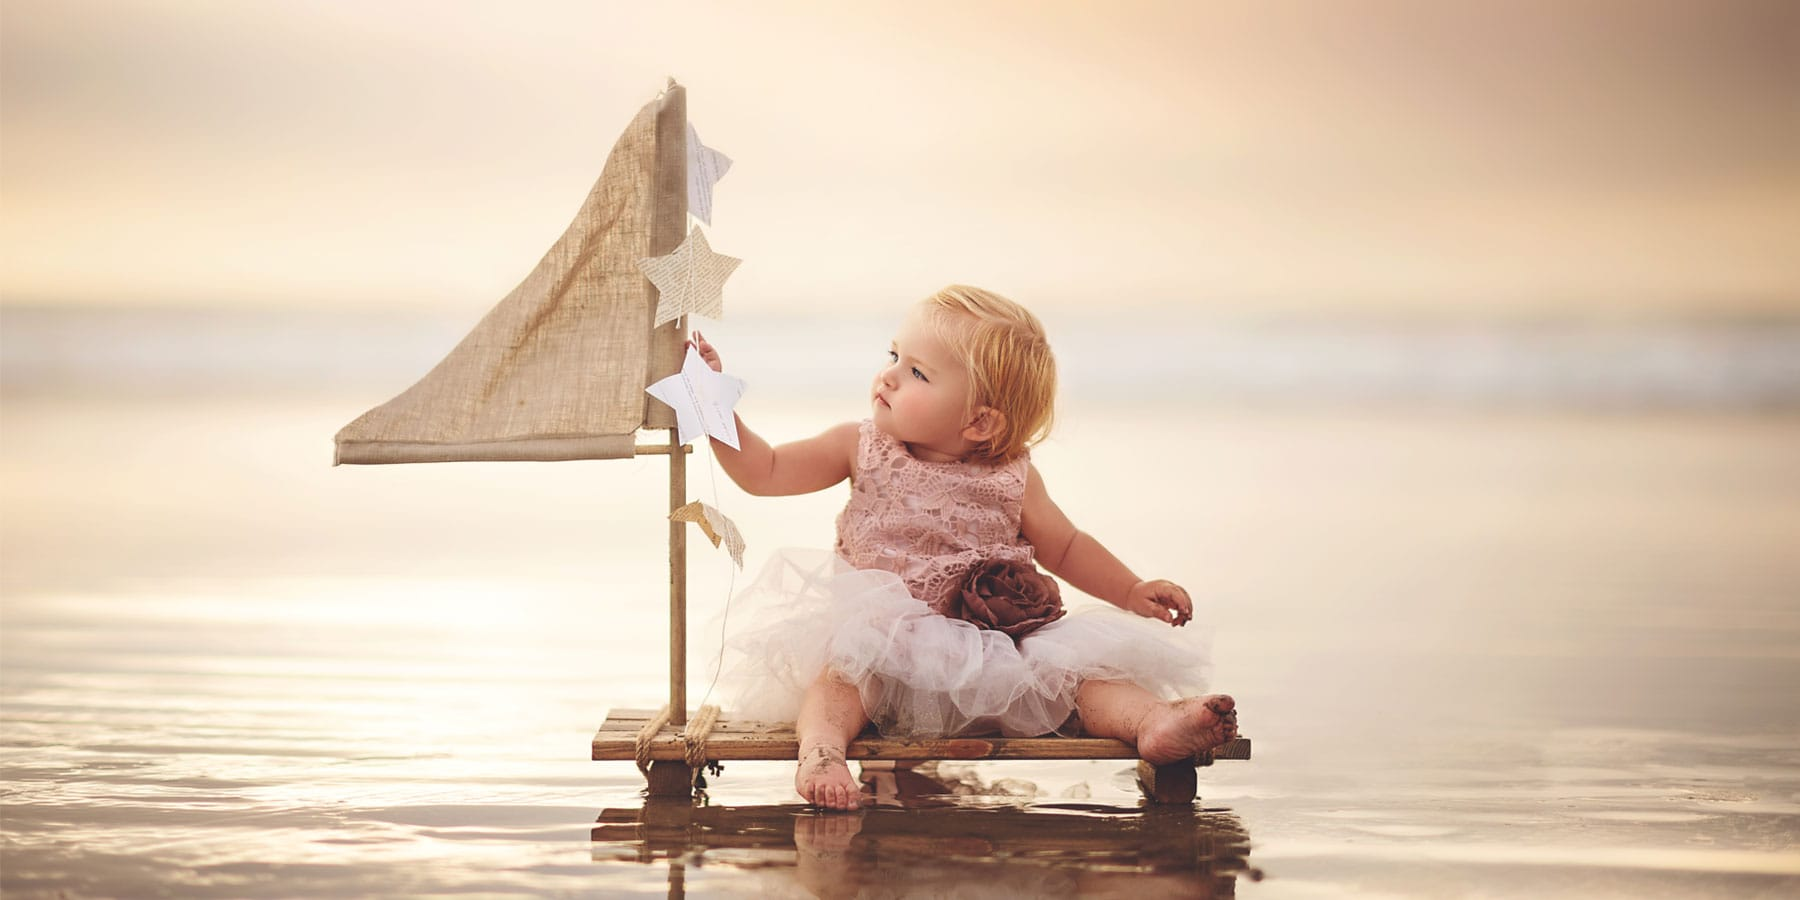 Child Photography, little girl sitting on a raft